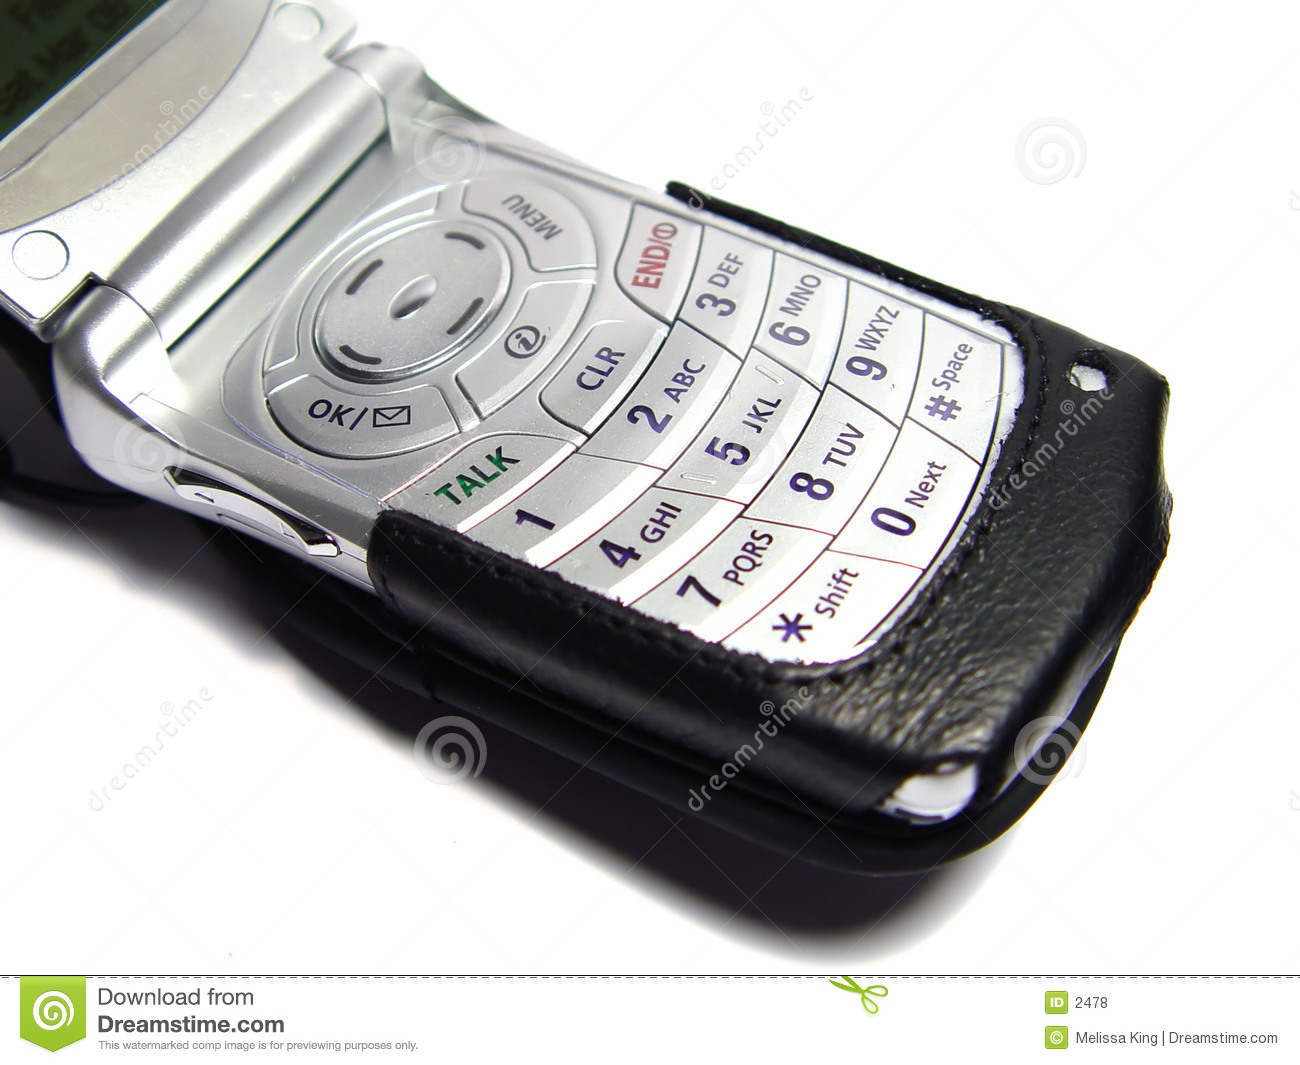 Cellular Phone with Case